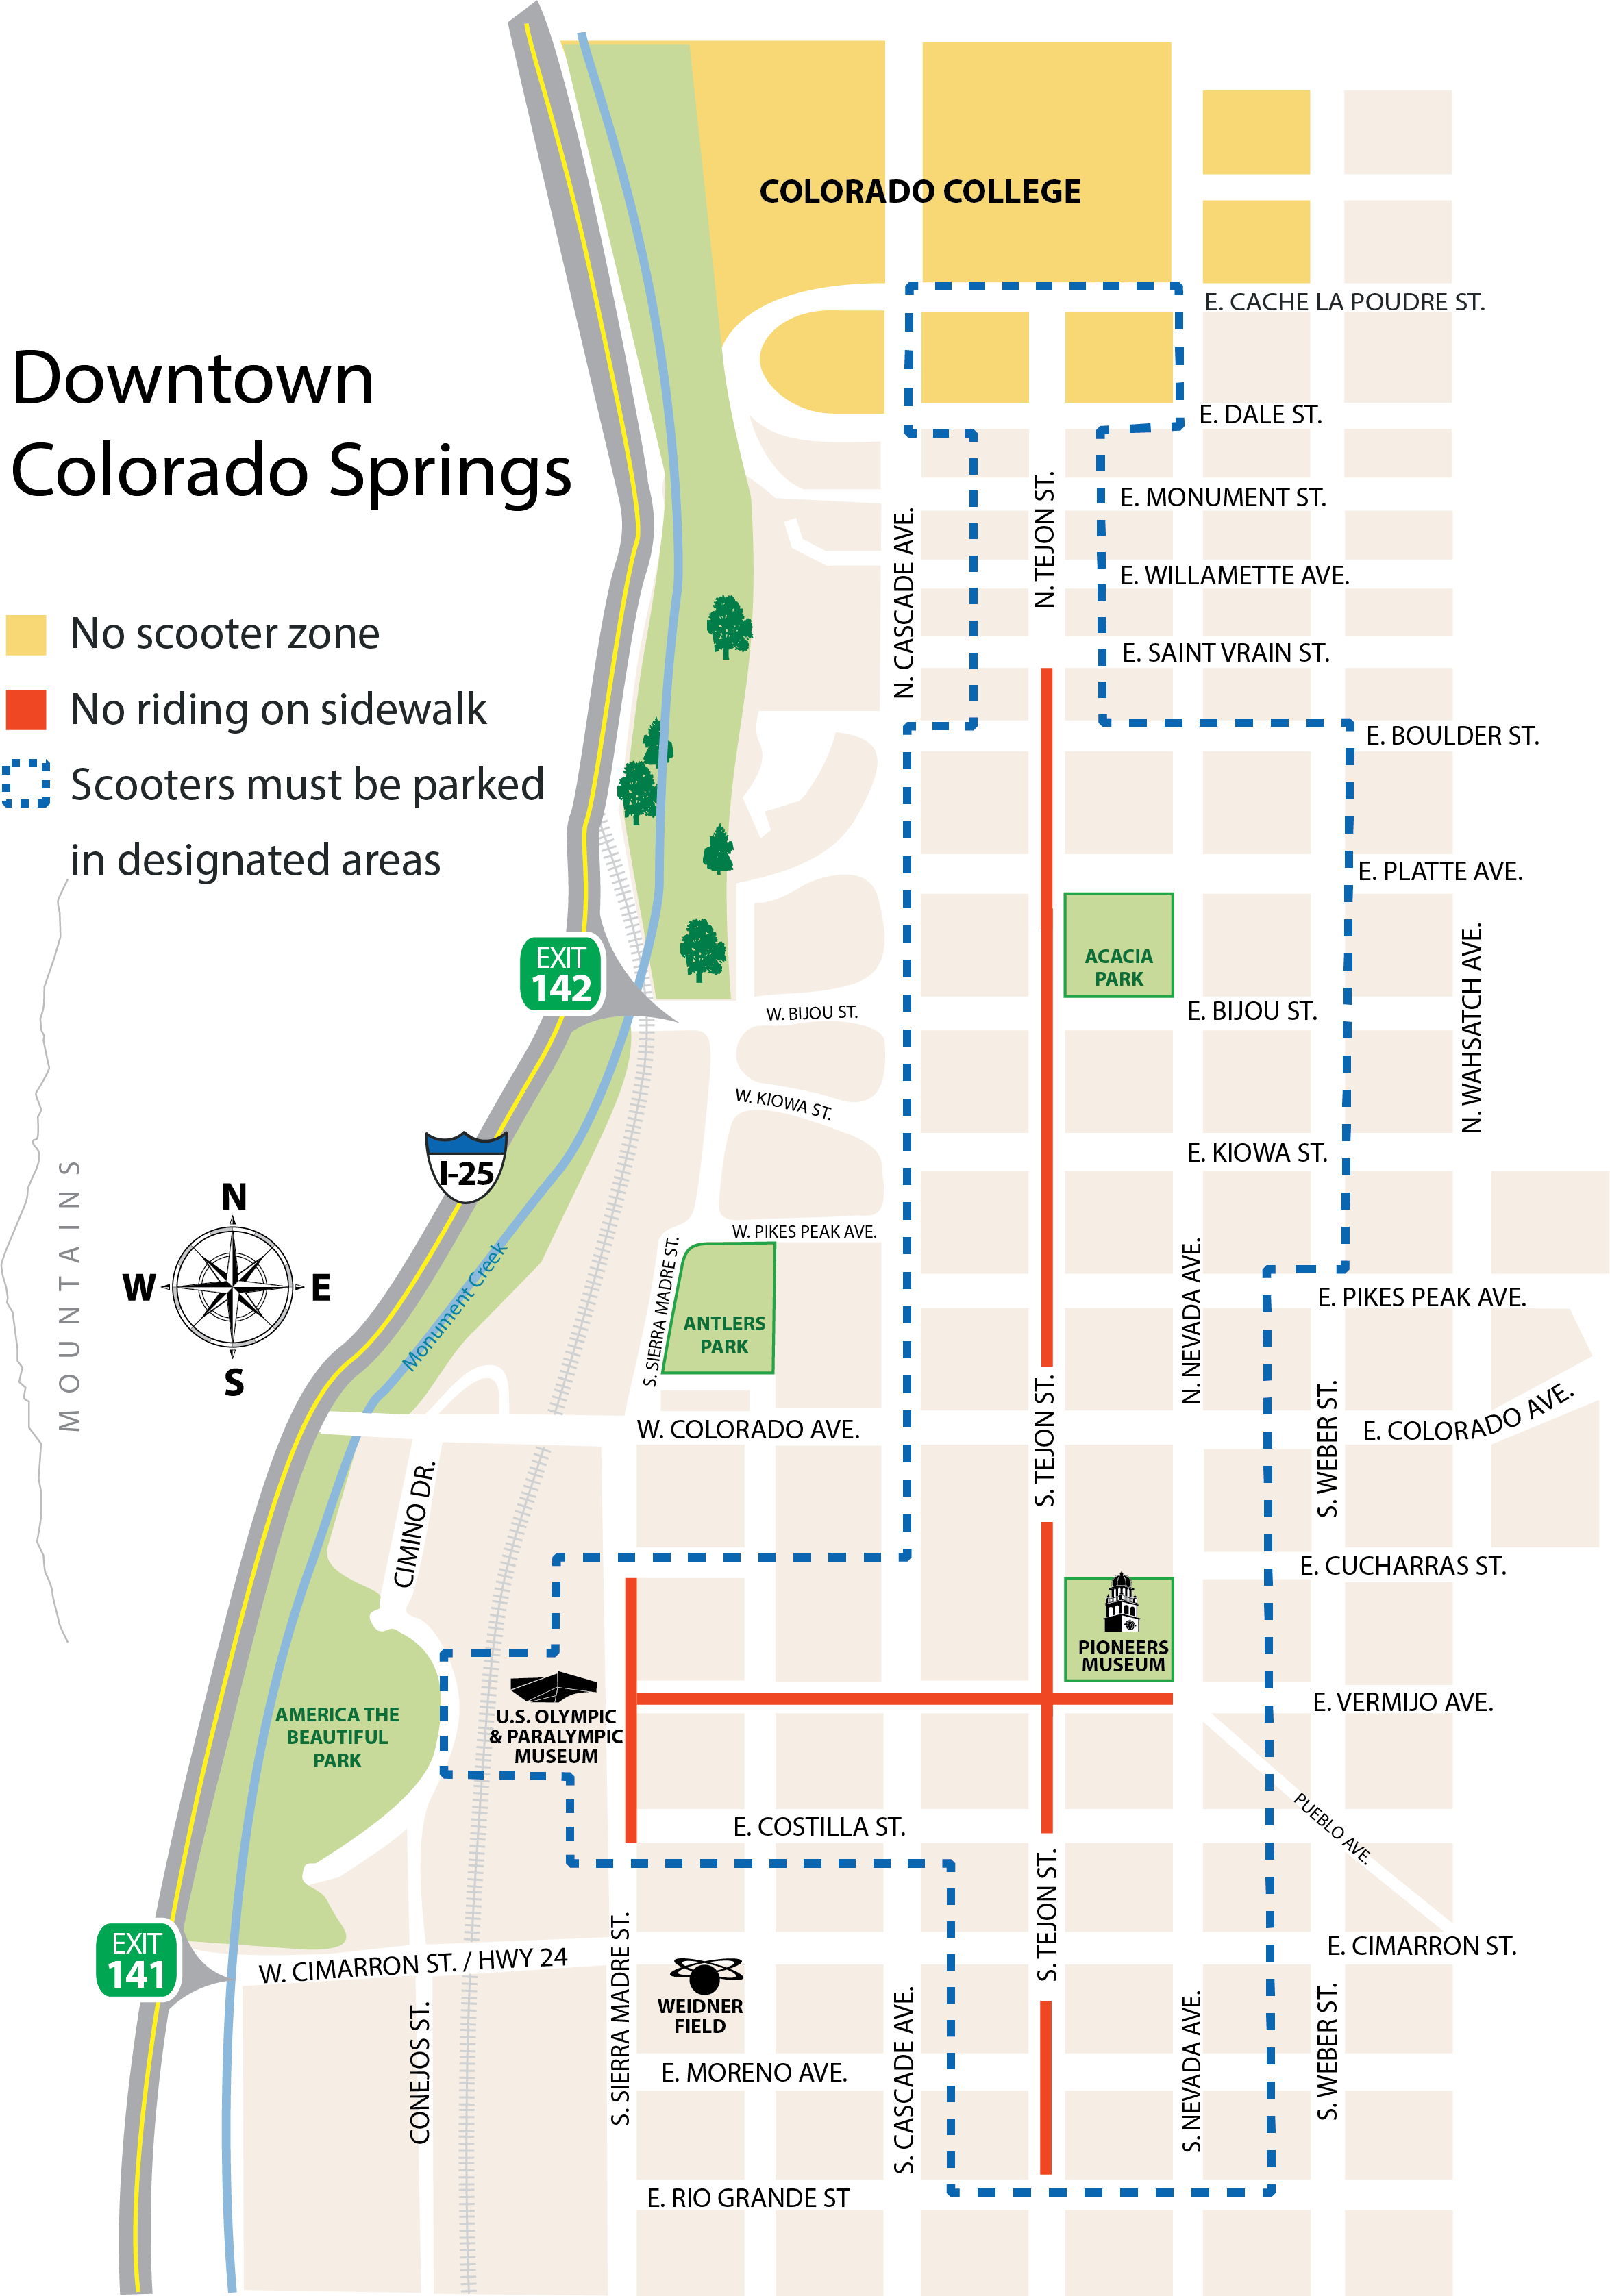 map of downtown scooter area